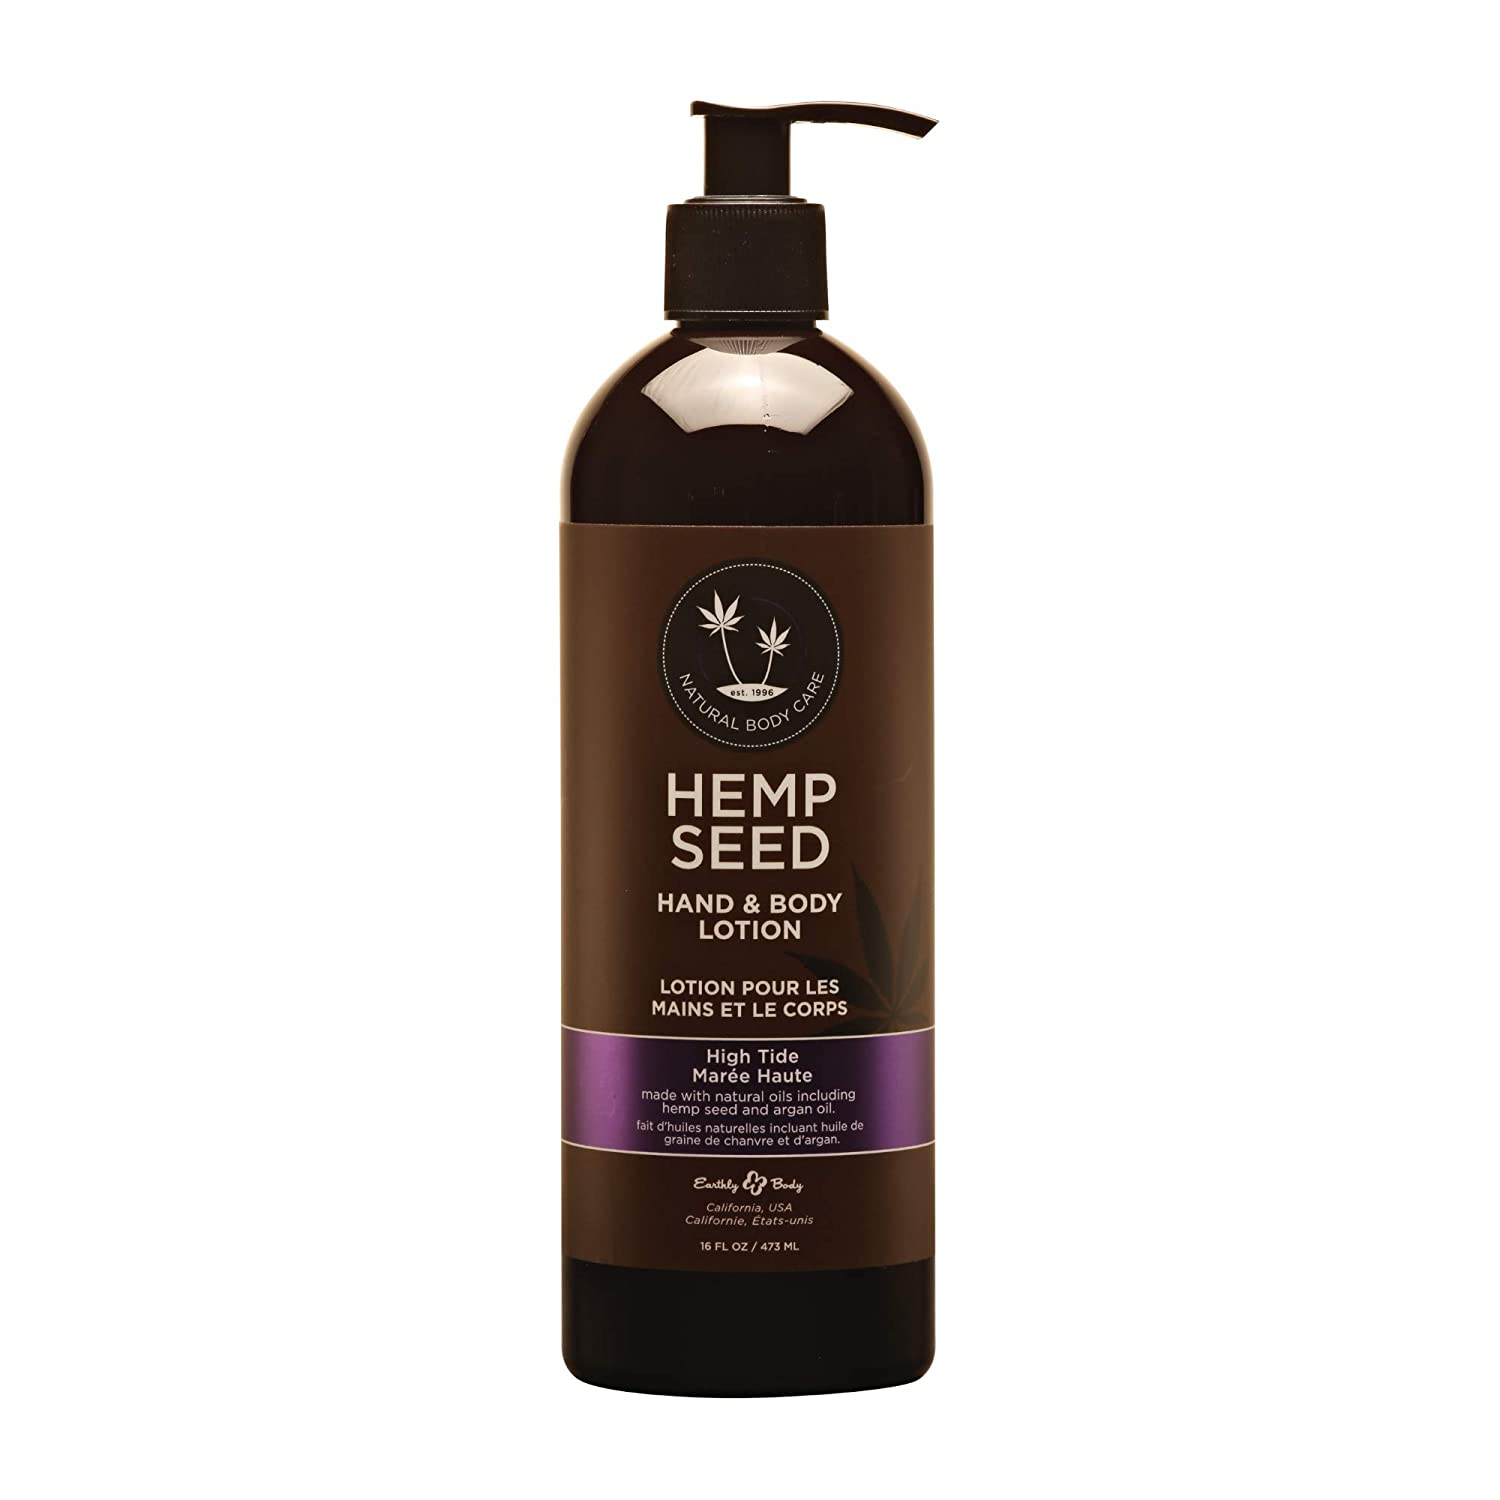 Hemp Seed Hand & Body Lotion, High Tide Scent - 16 oz. - Soothe Dry Skin - Argan Oil, Hemp Seed Oil - Light, Non-Greasy Formula - Vegan & Cruelty Free